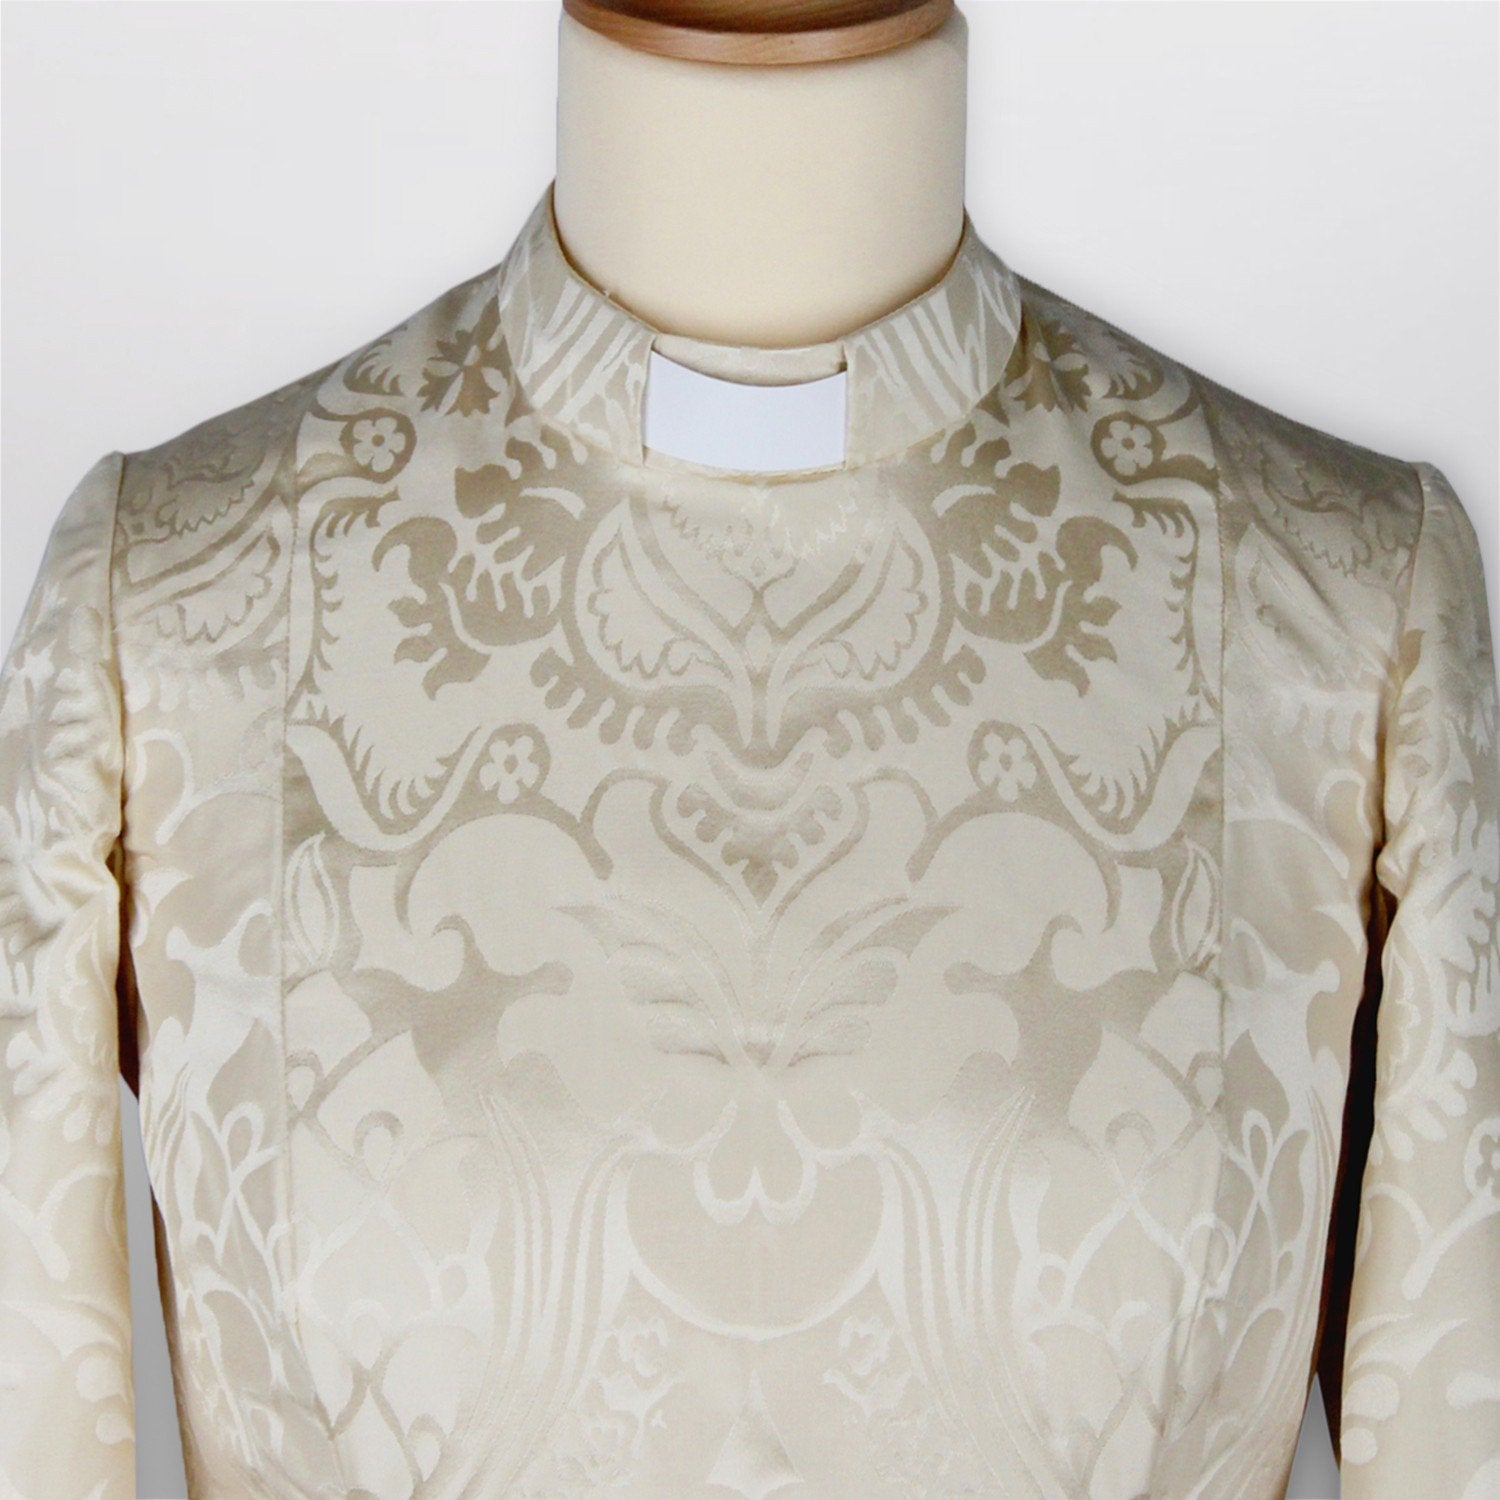 Isabella silk bespoke clergy dress - Watts & Co. (international)